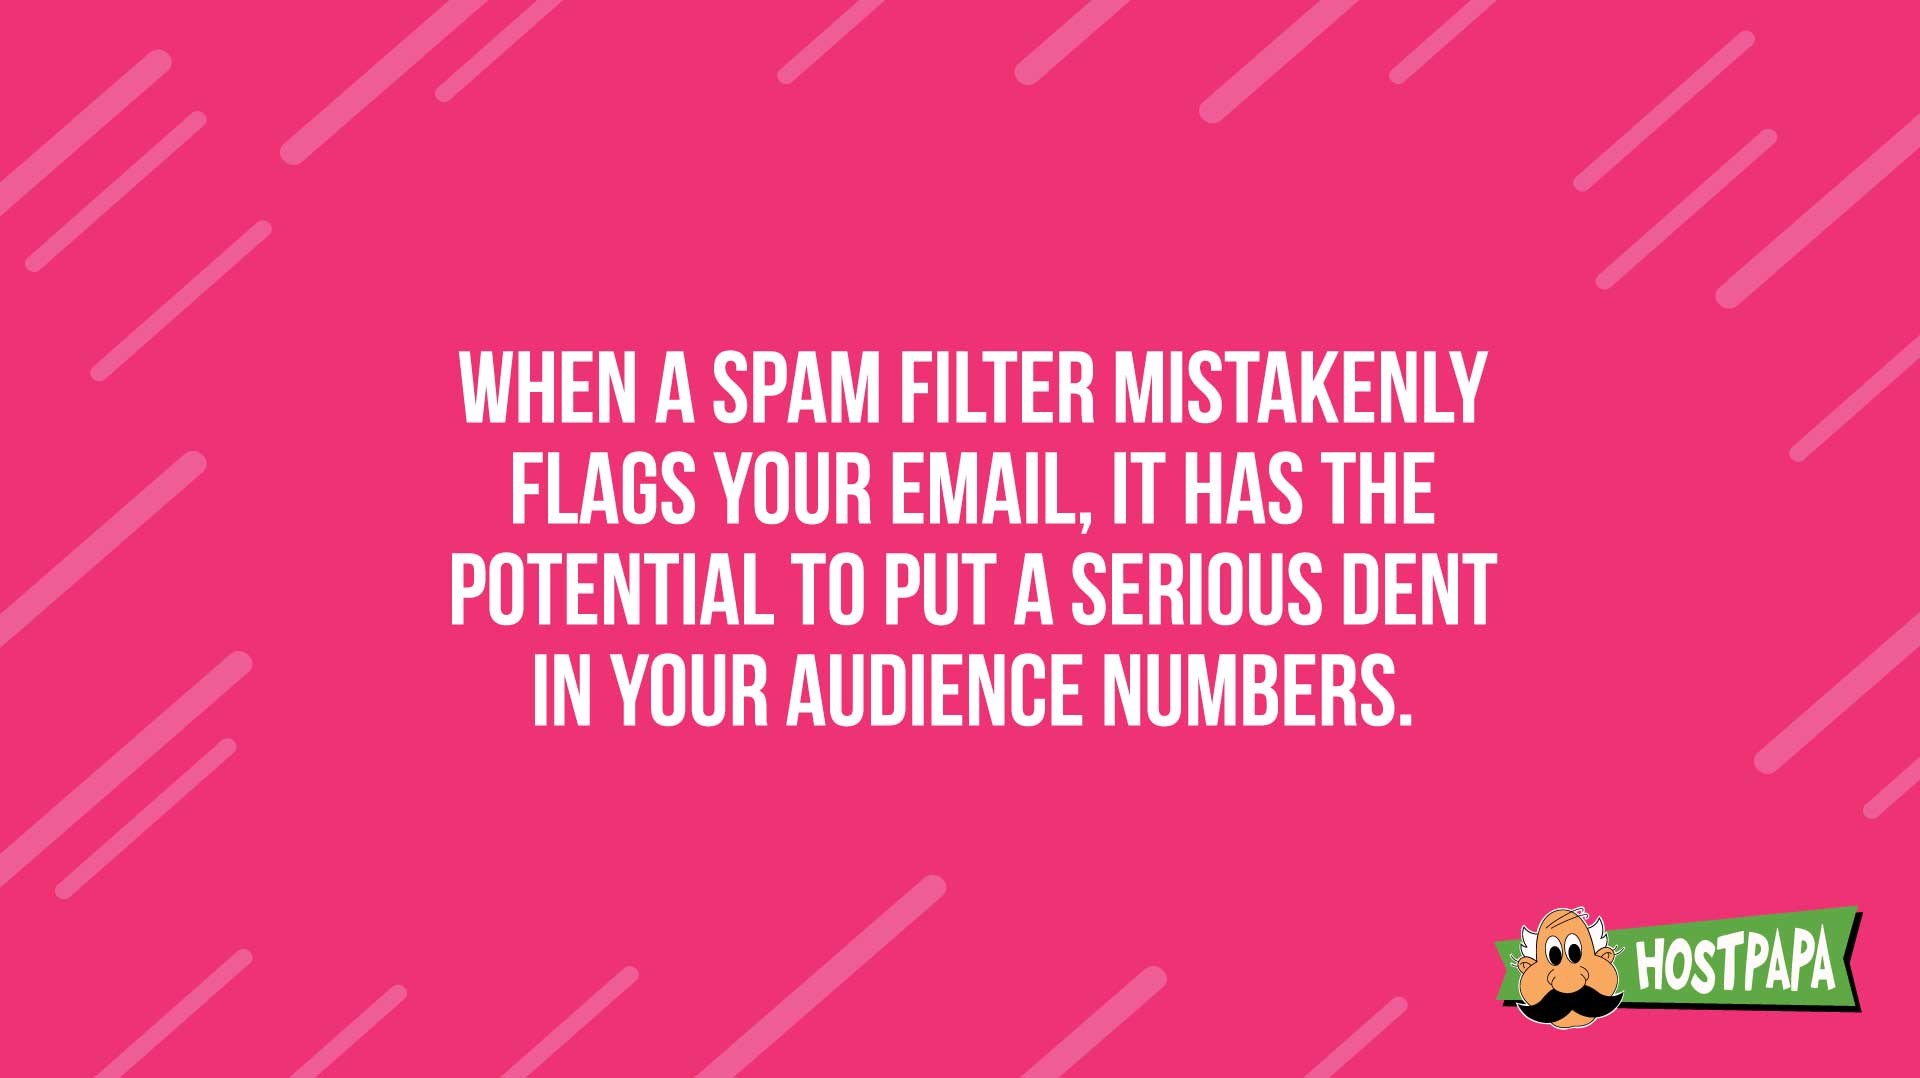 When a spam filter mistakenly flags yoru email, it has the potential to decrease your audience numbers